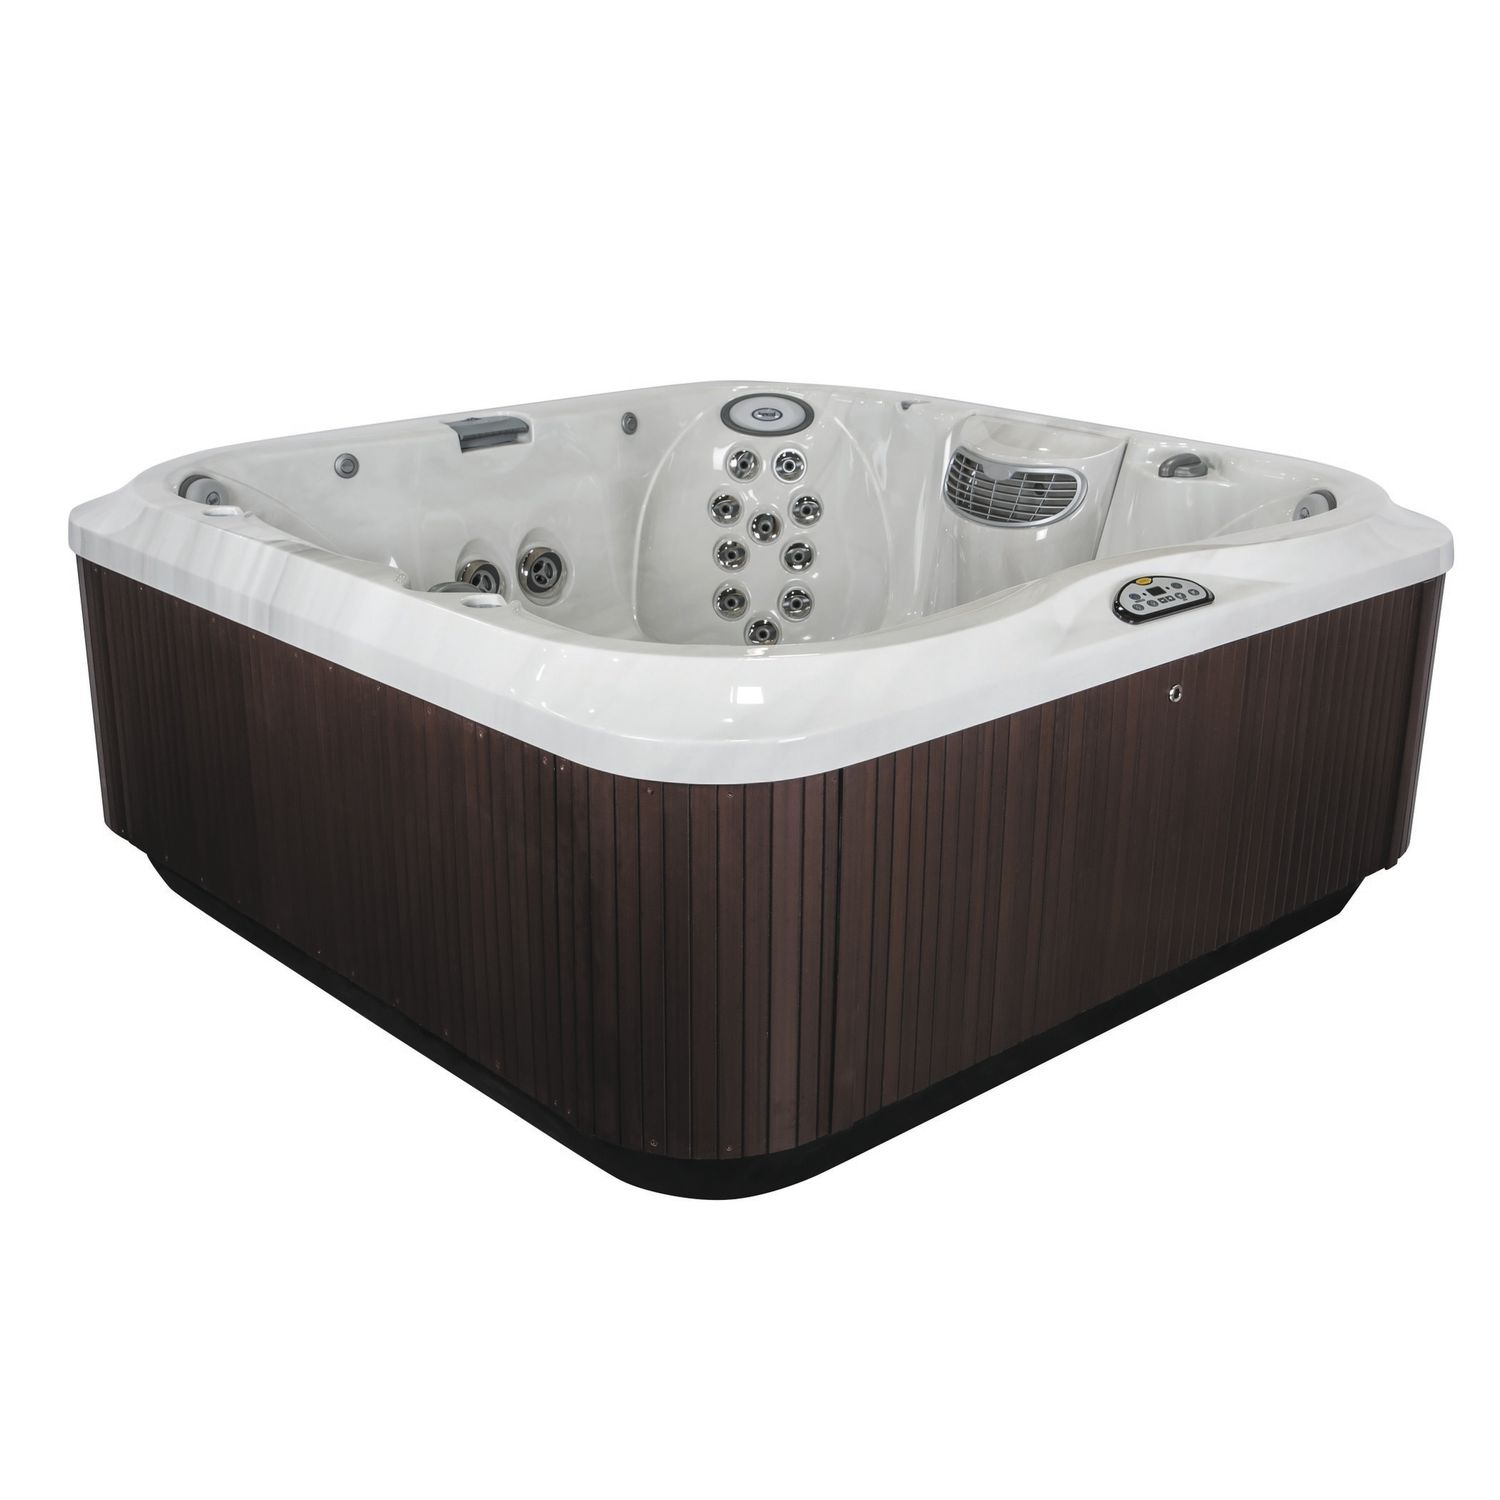 canada person and spa hot quebec plug walmart tub en play ip jet canadian co